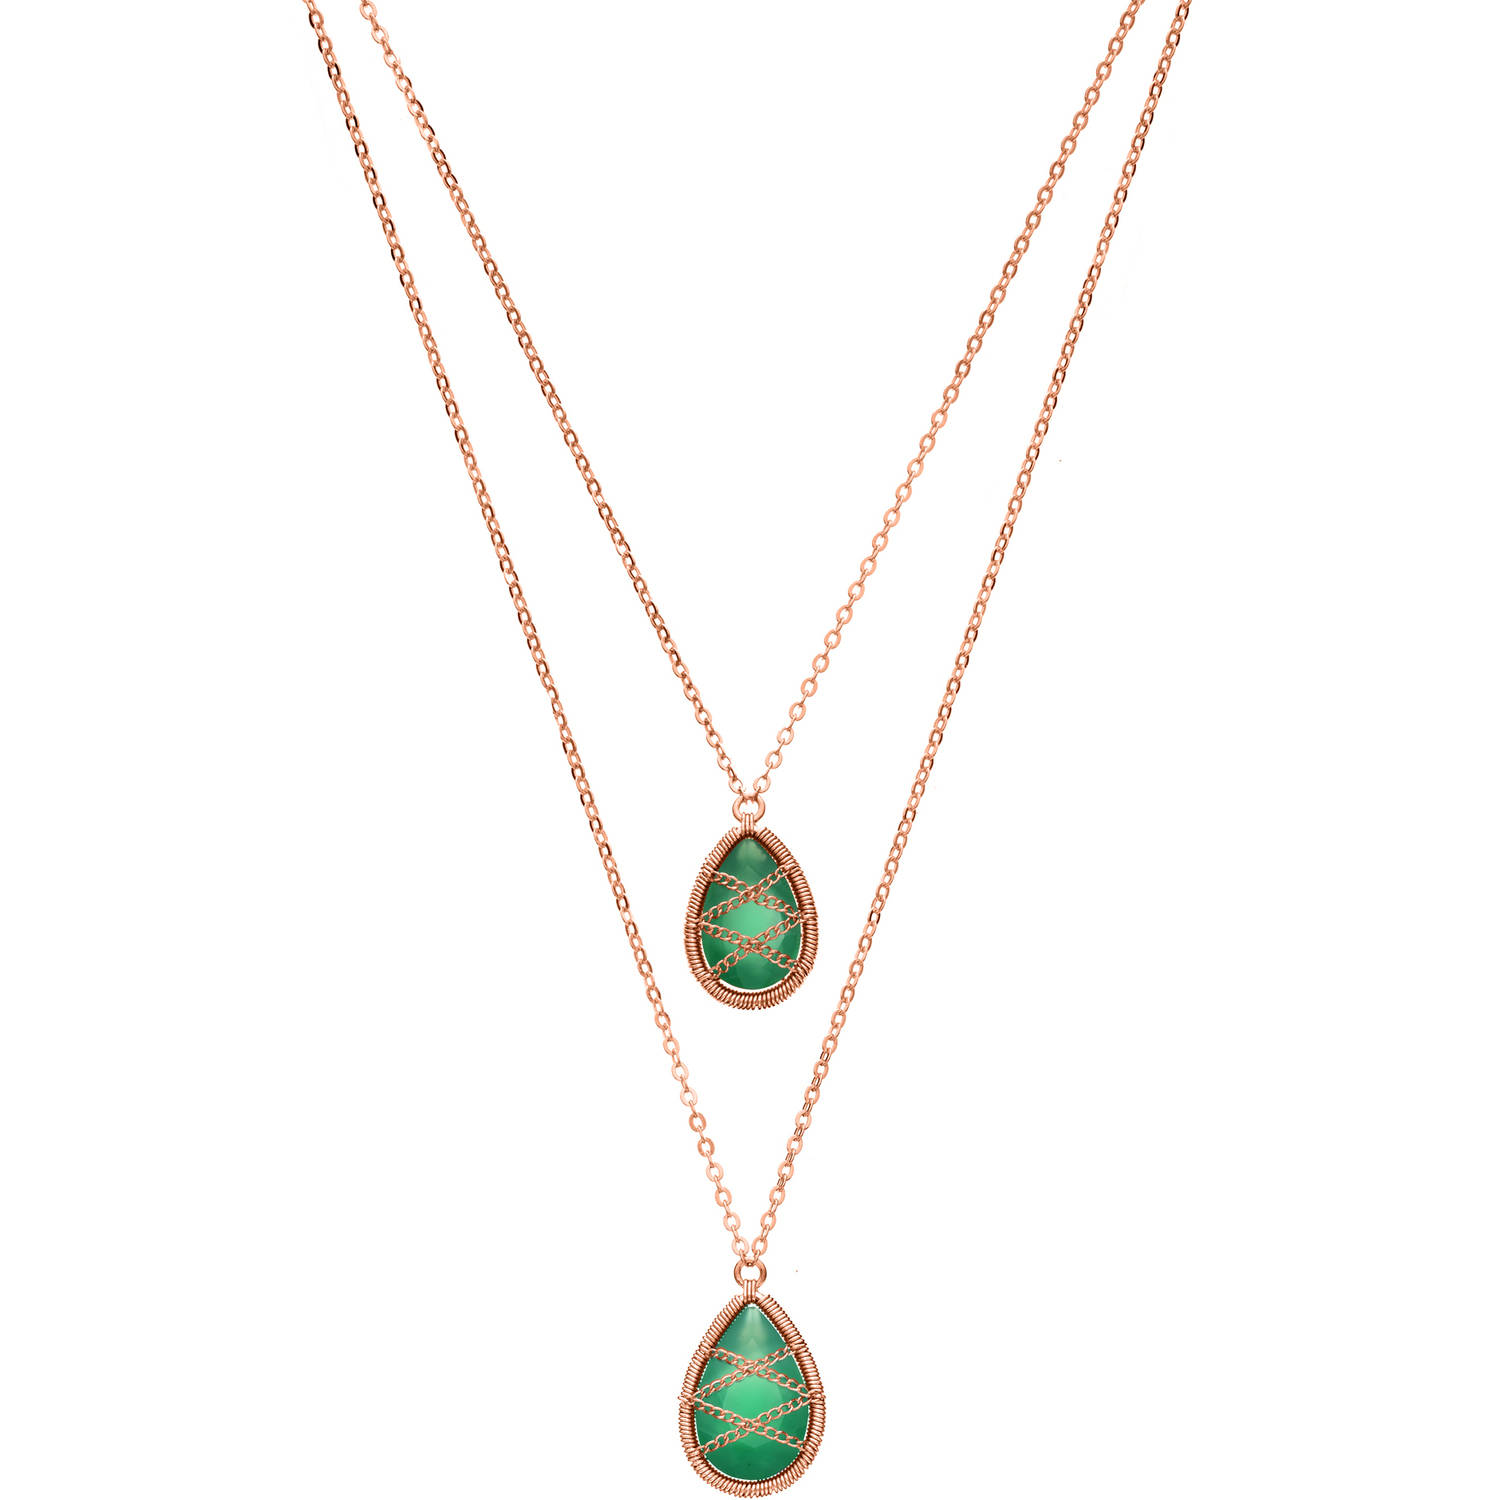 5th & Main Rose Gold over Sterling Silver Hand-Wrapped Bi-Layered Teardrop Chalcedony Necklace by Generic